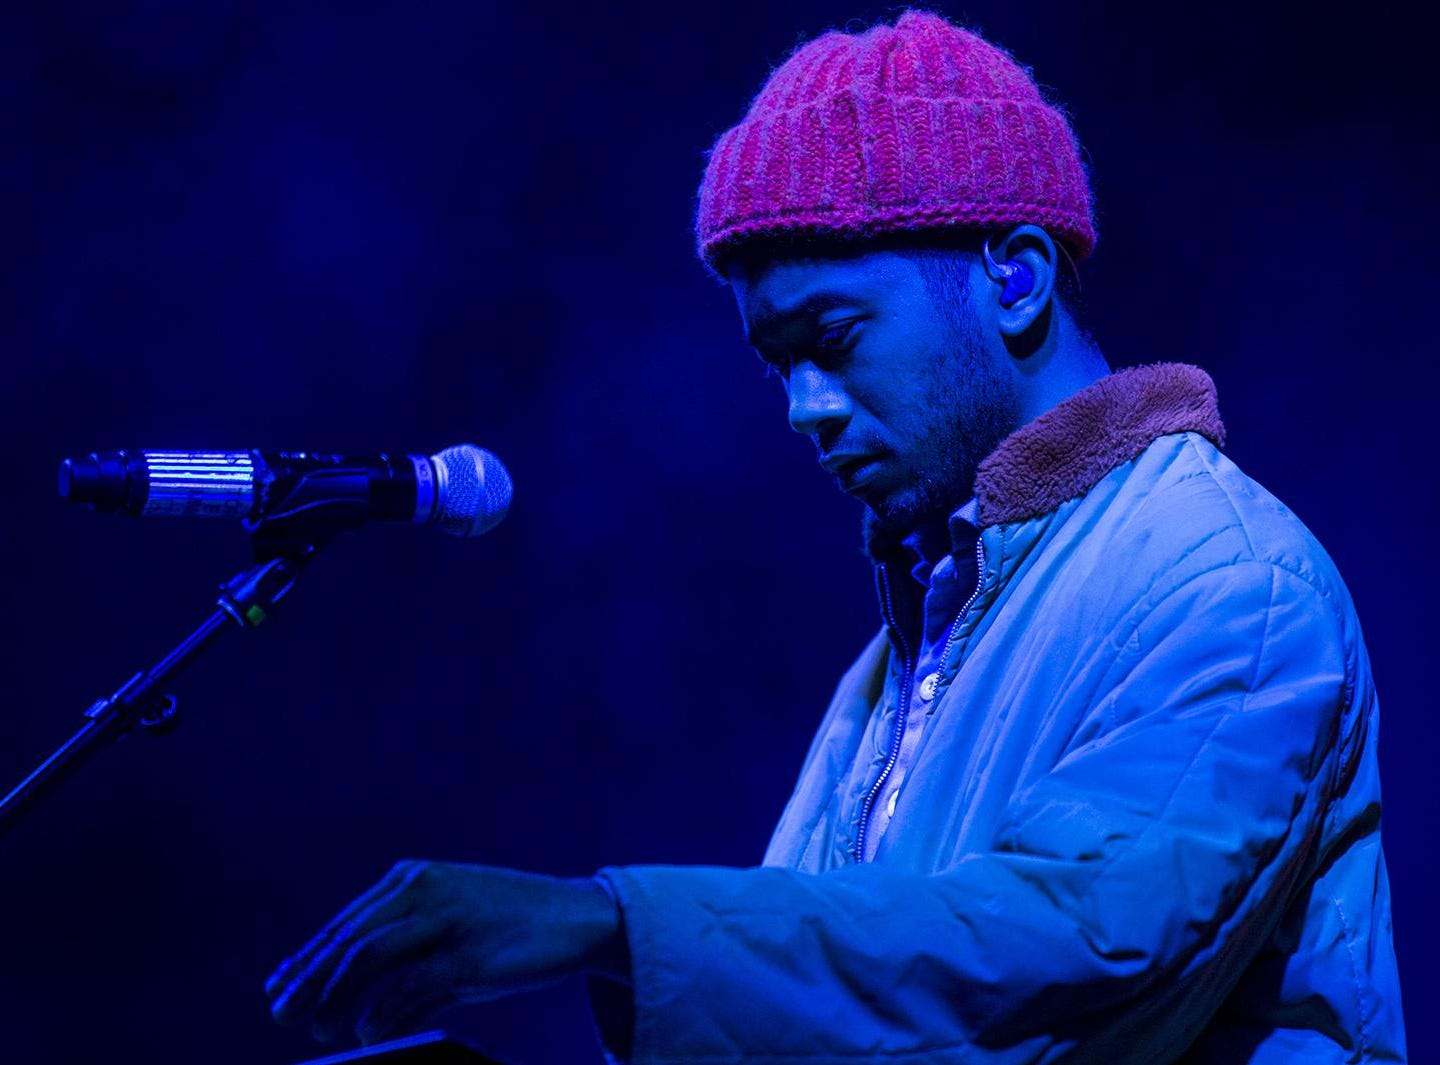 Toro y Moi perform during McDowell Mountain Music Festival on Friday, March 1, 2019, at Margaret T. Hance Park in Phoenix.